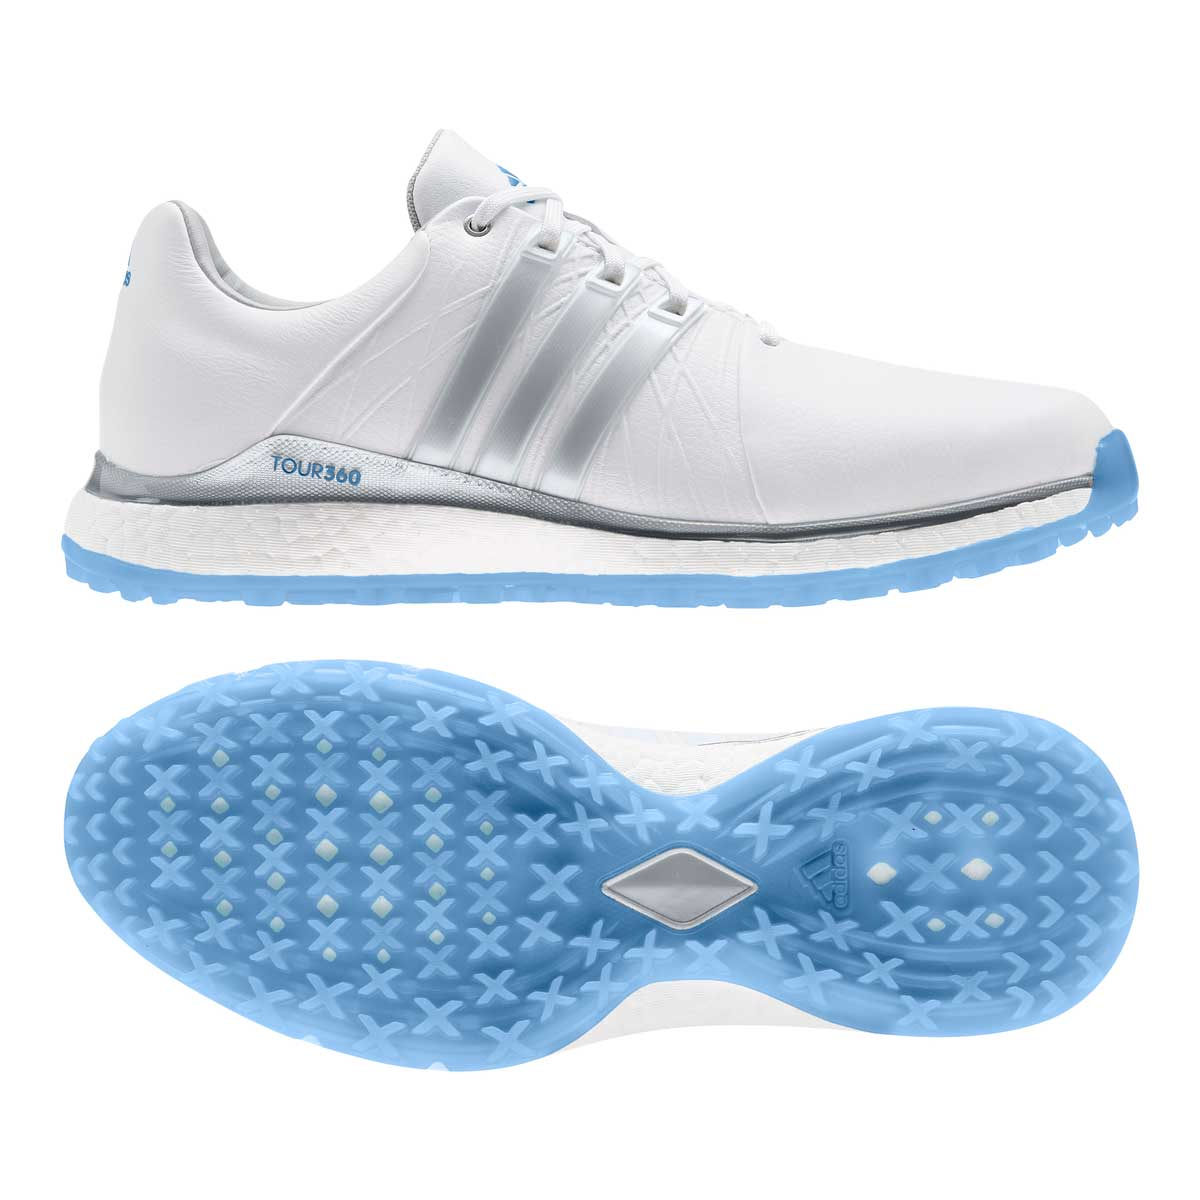 Adidas Women's TOUR360 XT-SL Spikeless White Golf Shoes